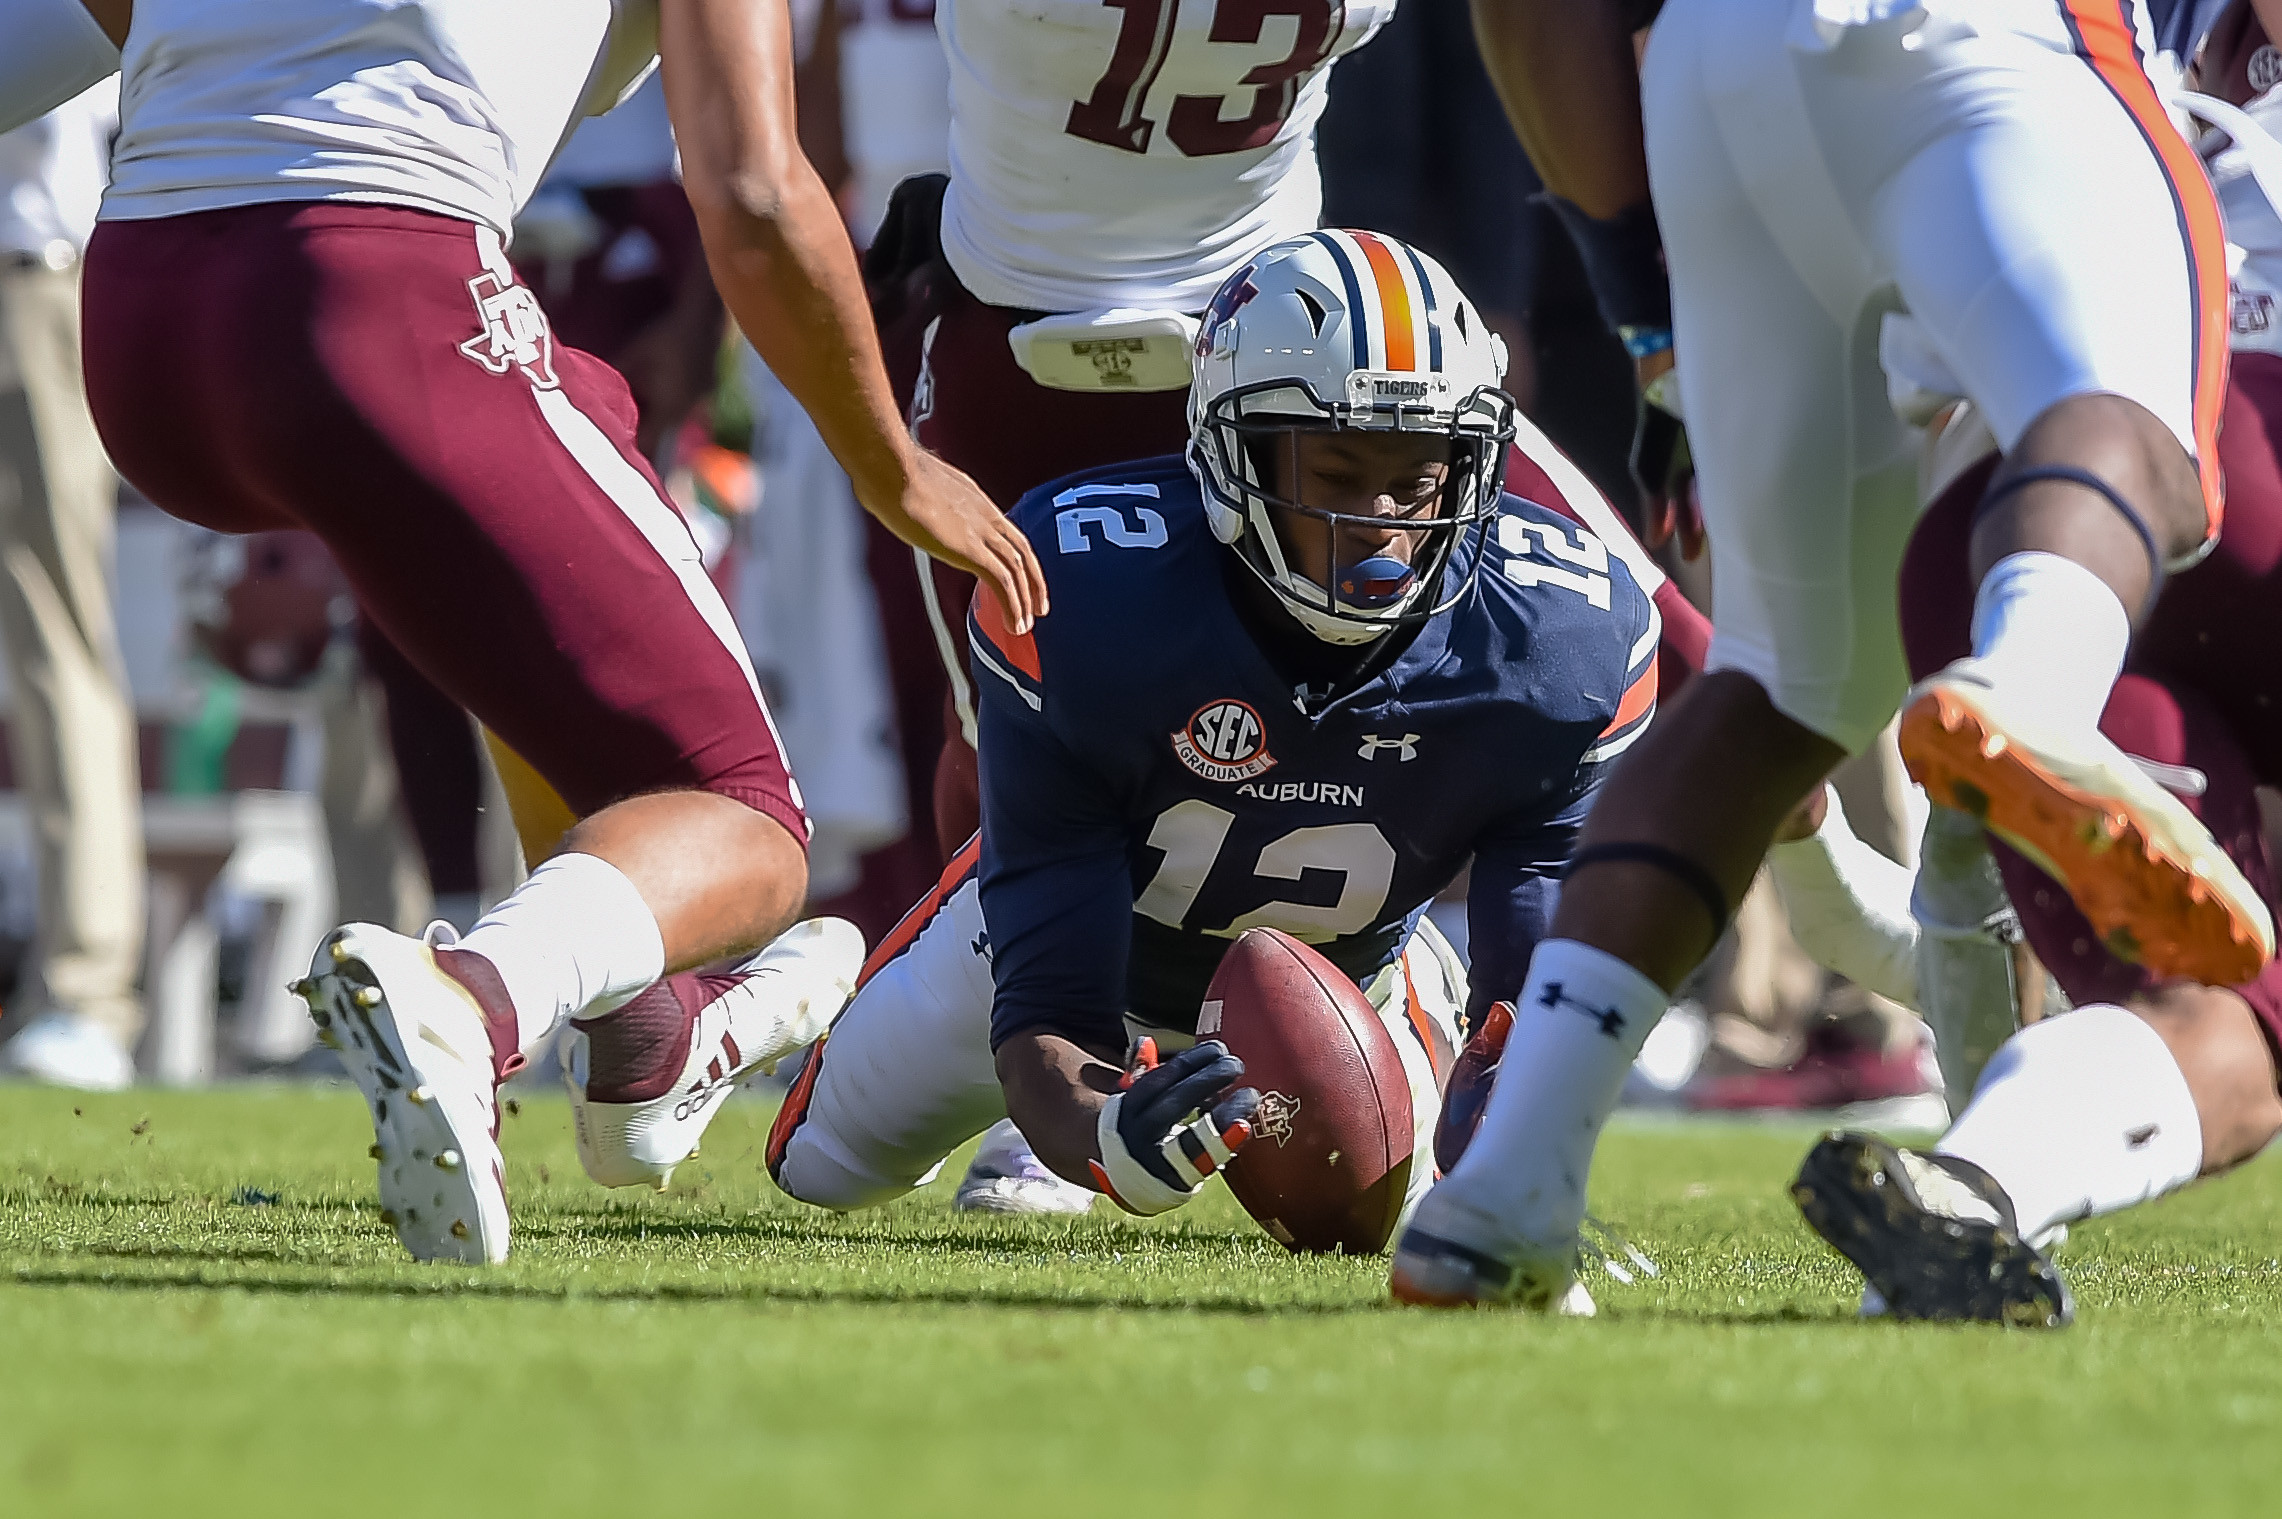 Auburn Tigers defensive back Jamel Dean (12) recovers a  fumble during the first half of an NCAA football game against the Texas A&M Aggies Saturday, November 3, 2018, at Jordan-Hare Stadium in Auburn, Ala. (Photo by Jeff Johnsey)